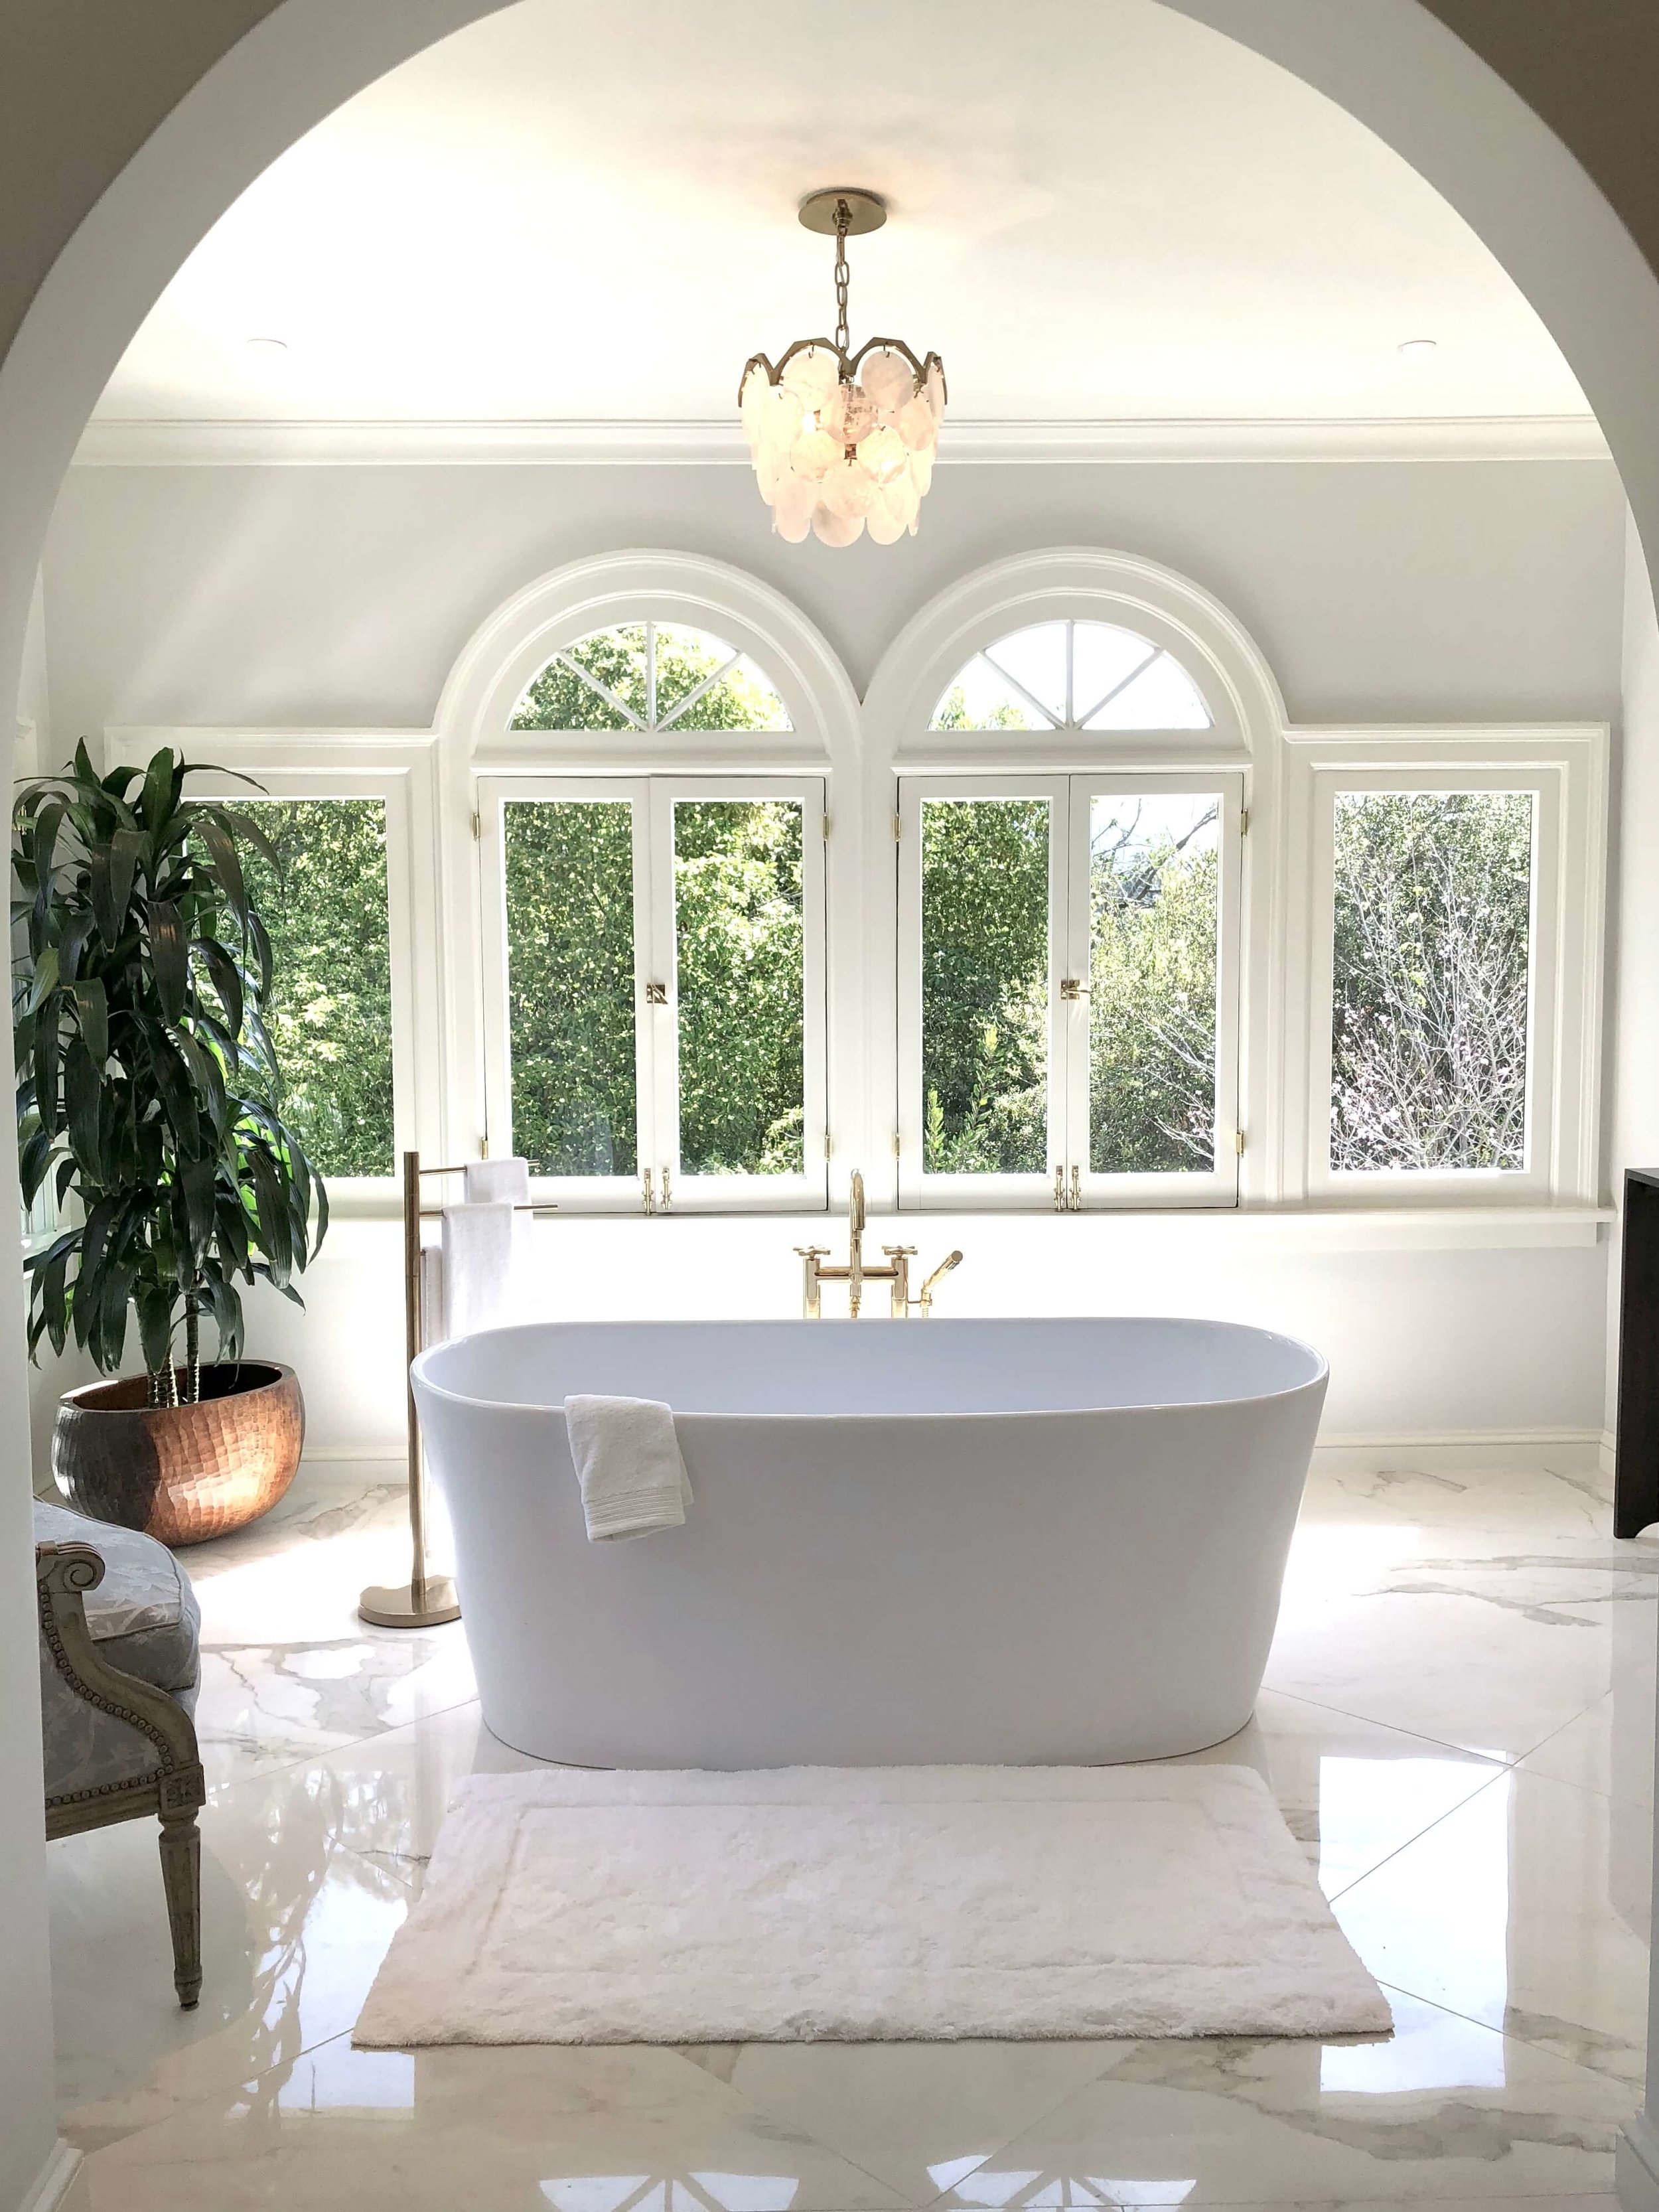 Master bathroom w/ free-standing tub and white marble tile floor designed by Parker West Interiors #bathroomdesign #freestandingtub #bathroomremodel #bathroomdesignideas